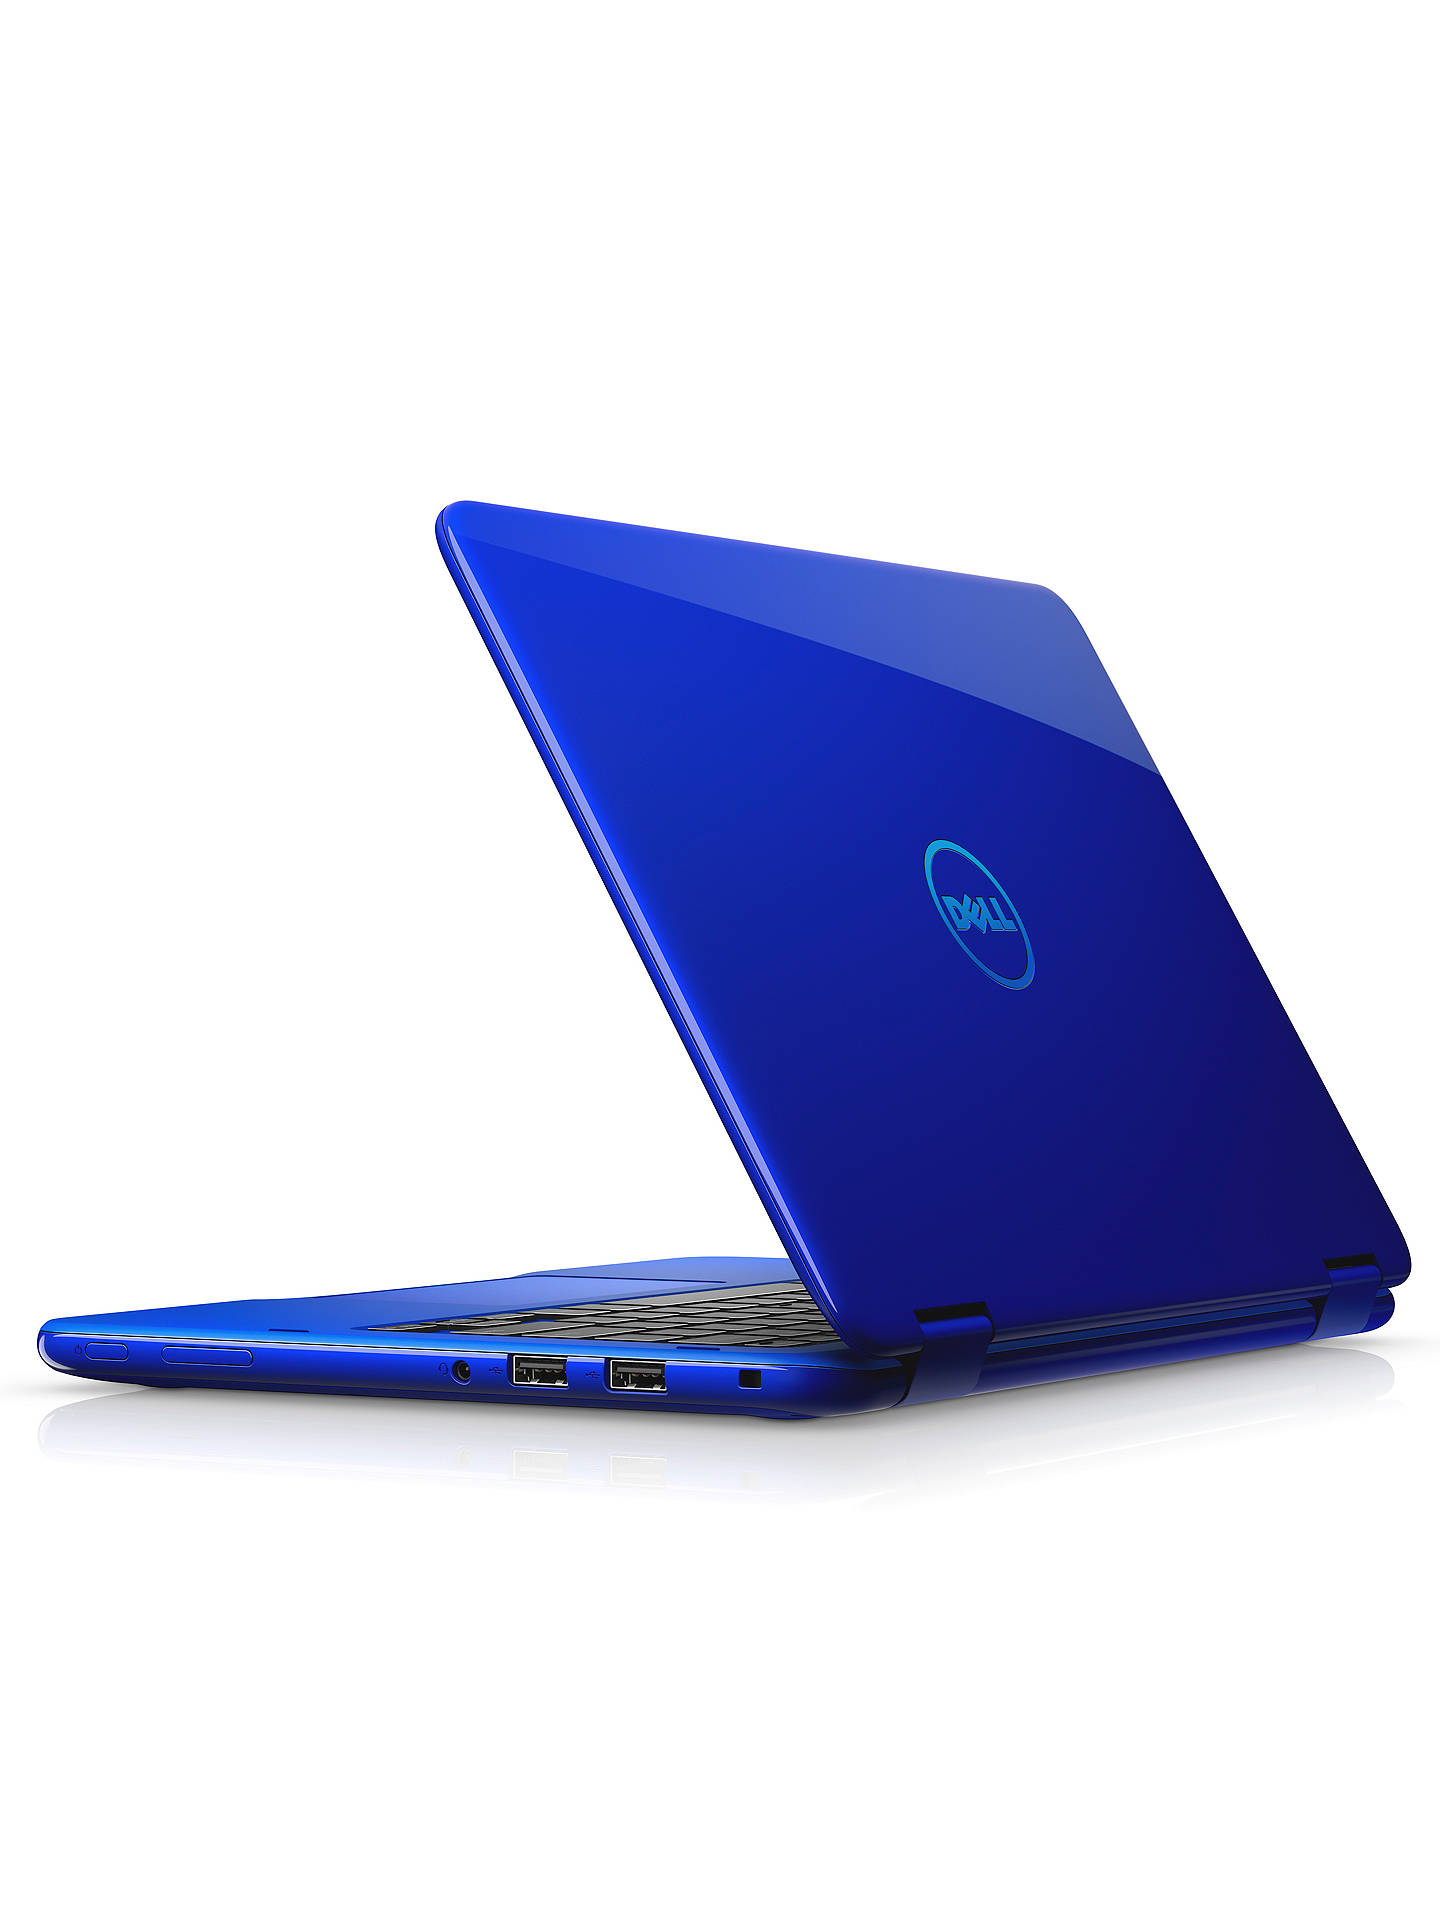 Dell Inspiron 11 3000 Series 2-in-1 Laptop, Intel Core M3